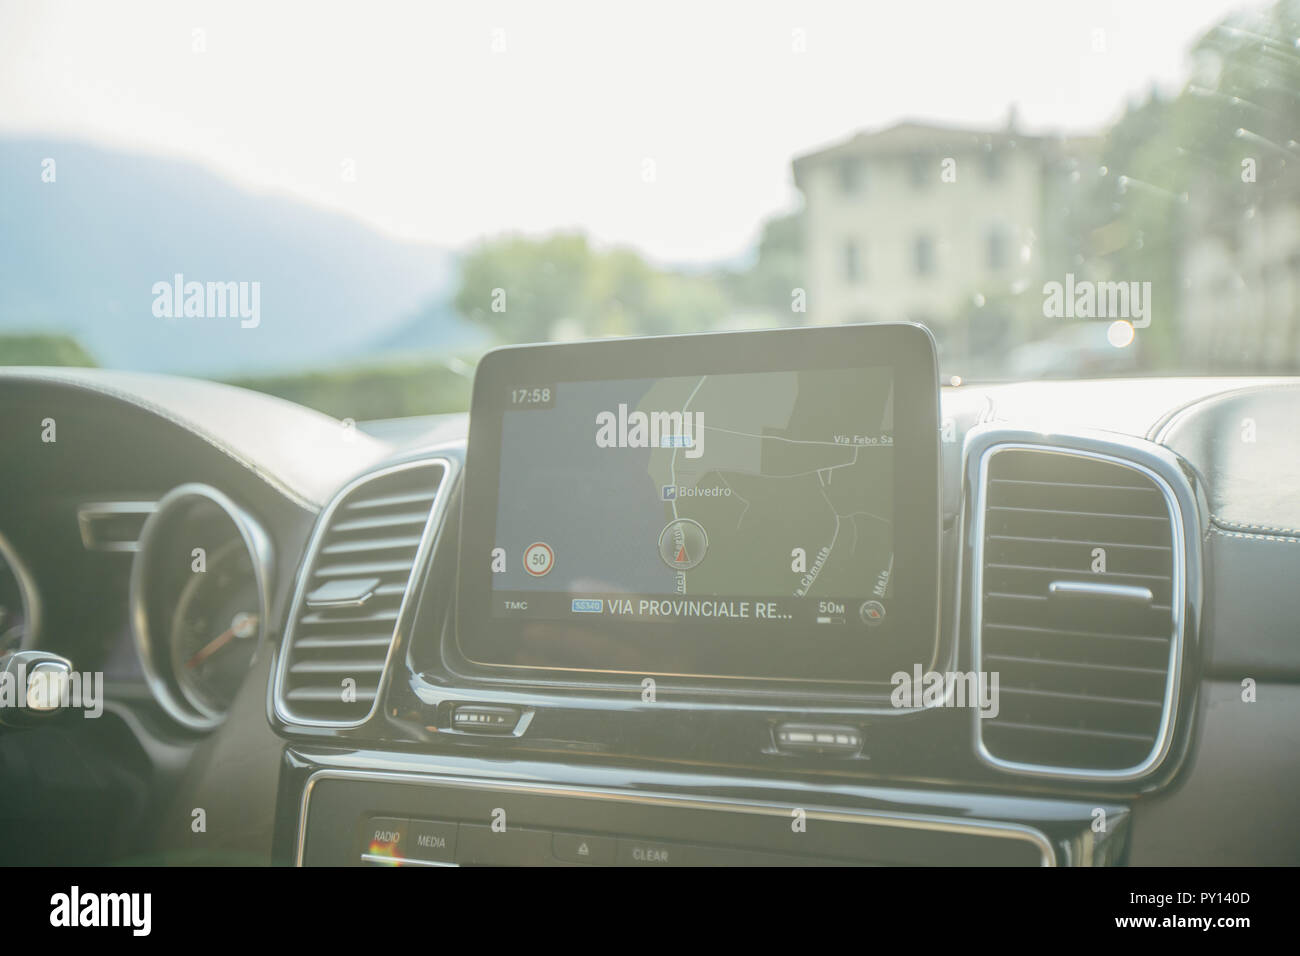 Car navigation display on the car panel Stock Photo